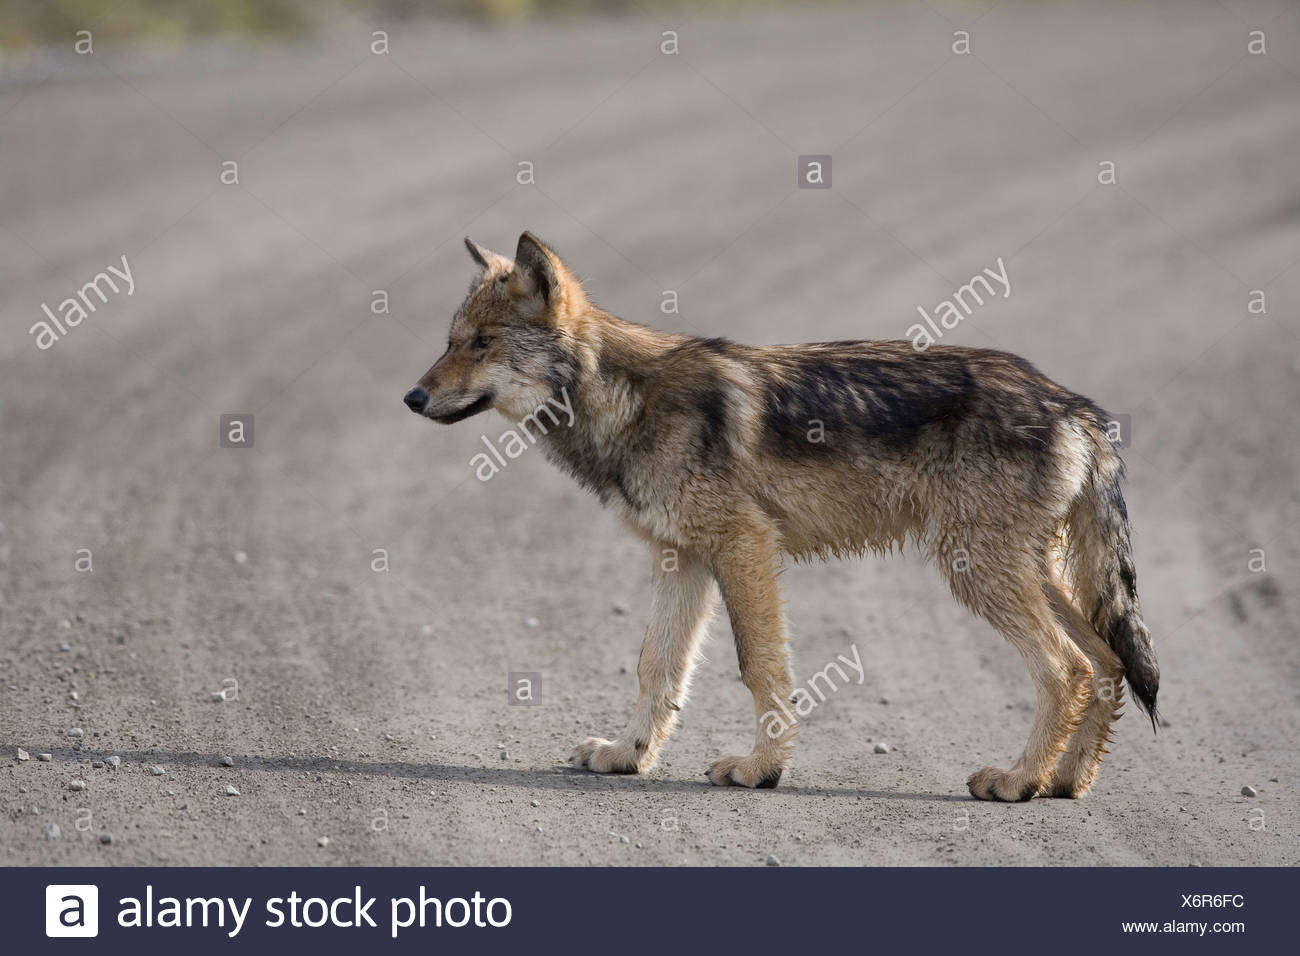 Wolf, Canis lupus, pup of Grant Creek pack, walking on dirt road, Denali National Park, Alaska, horizontal, wild Stock Photo